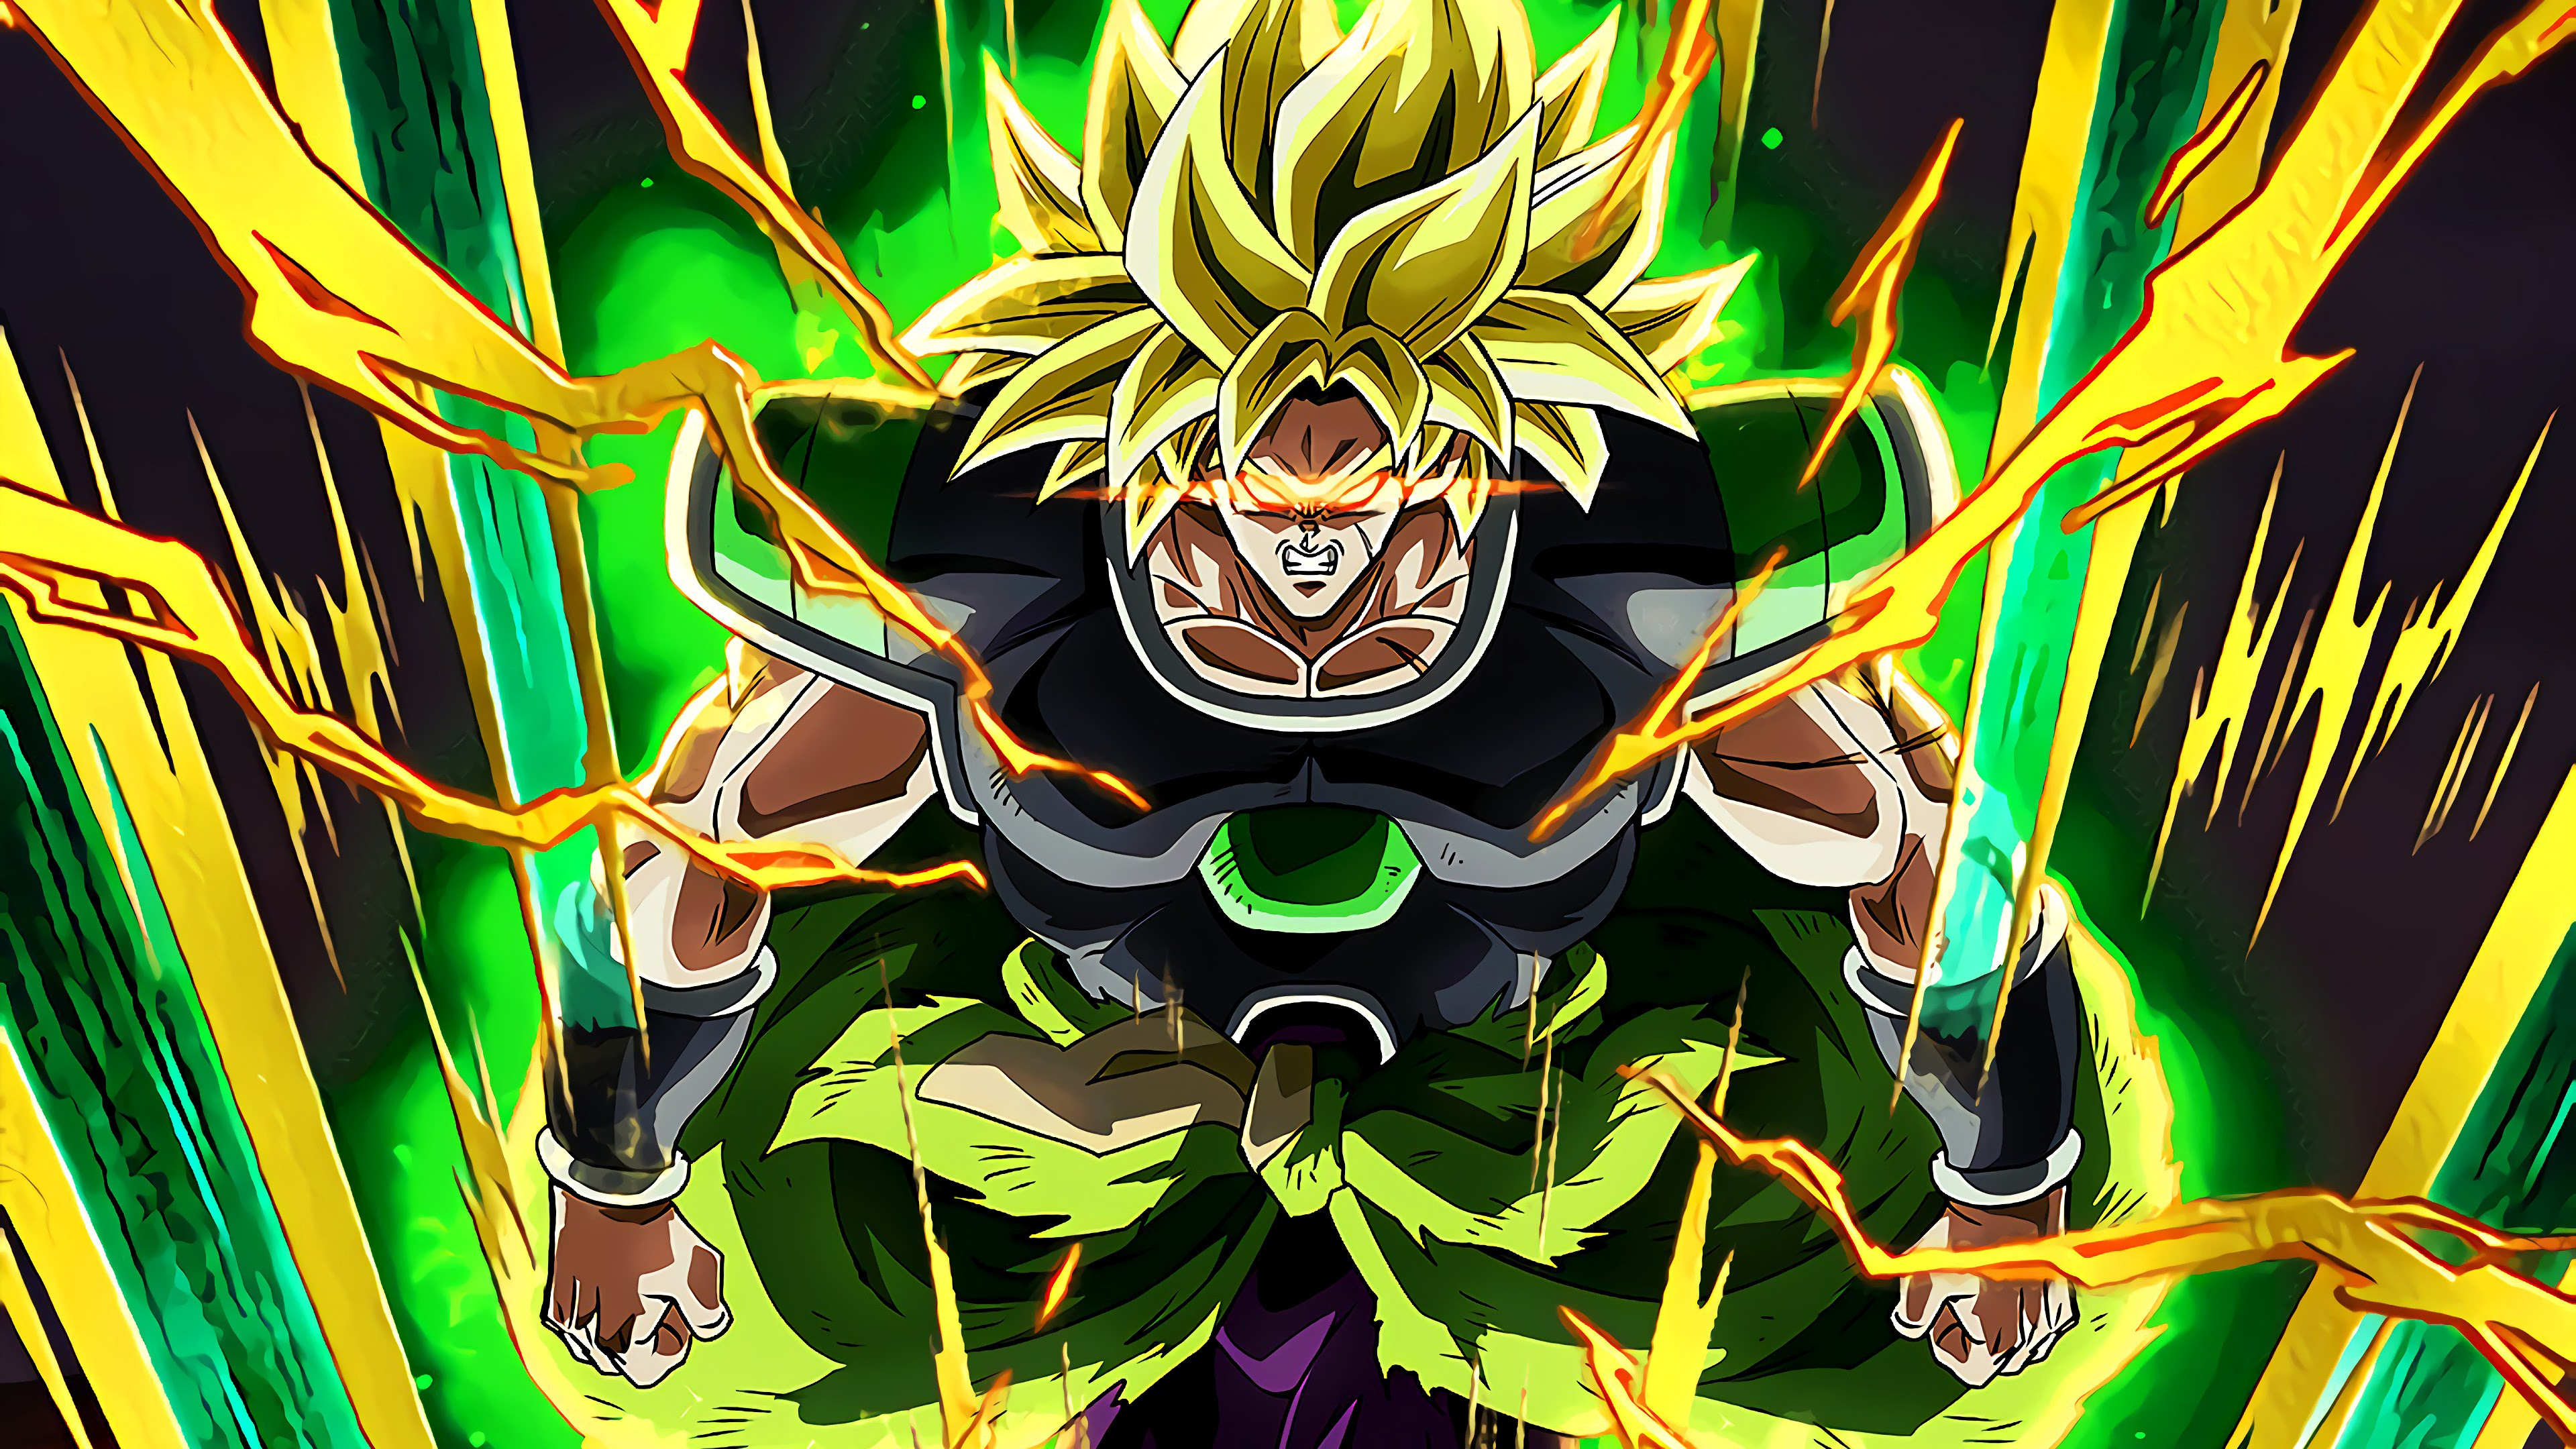 Broly Super Saiyan Dragon Ball Super Broly 4k 3840x2160